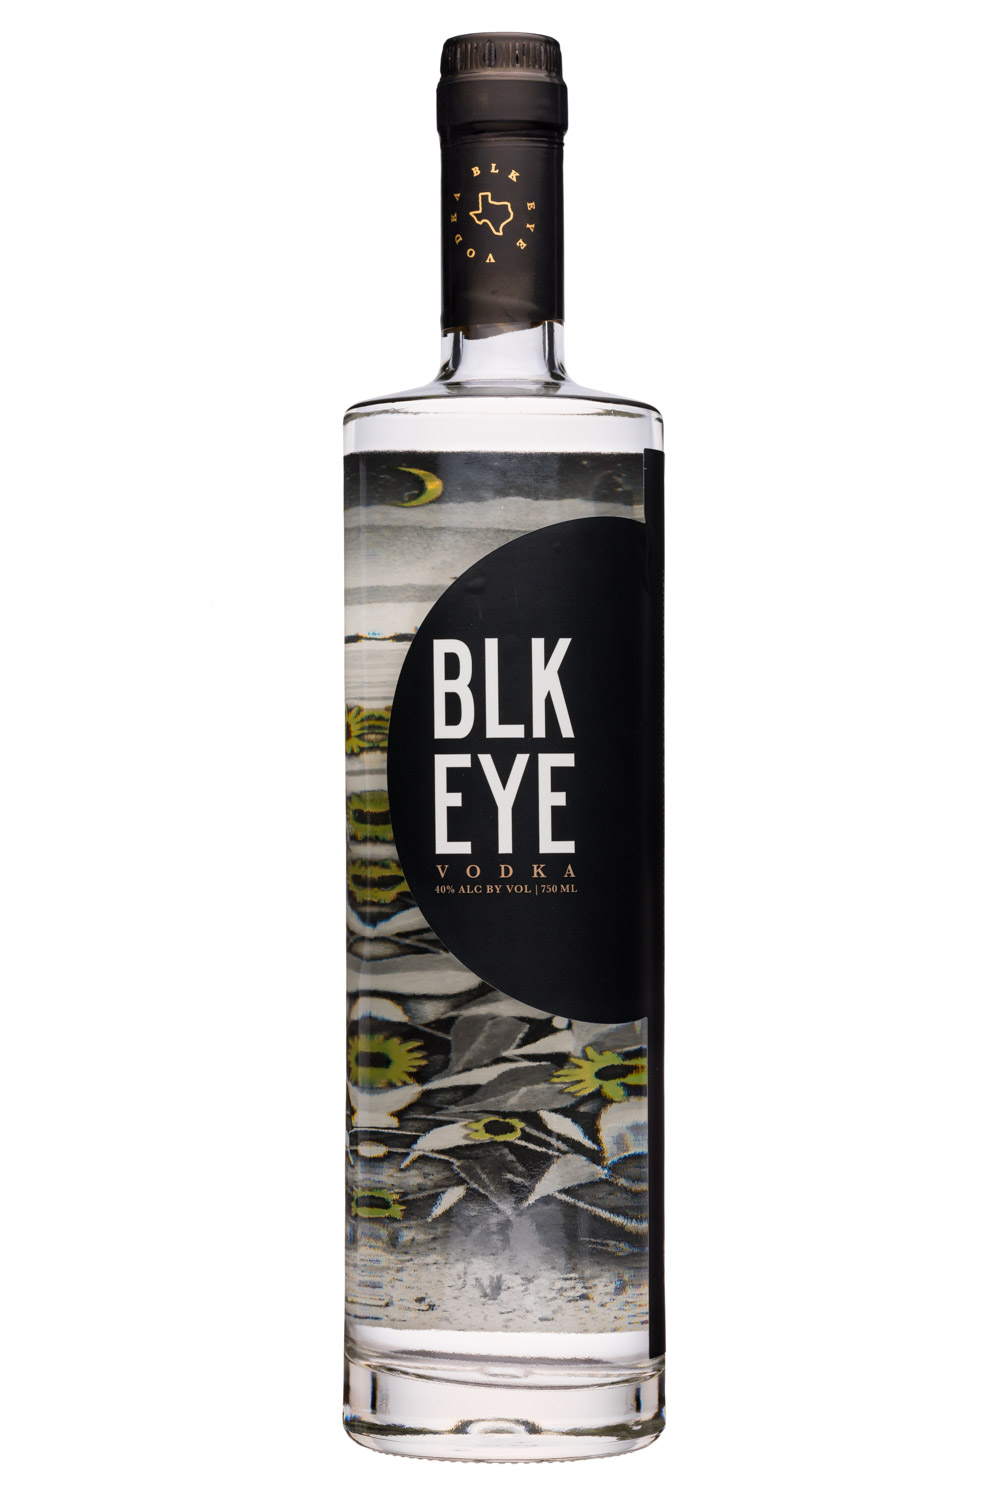 BLK EYE Vodka